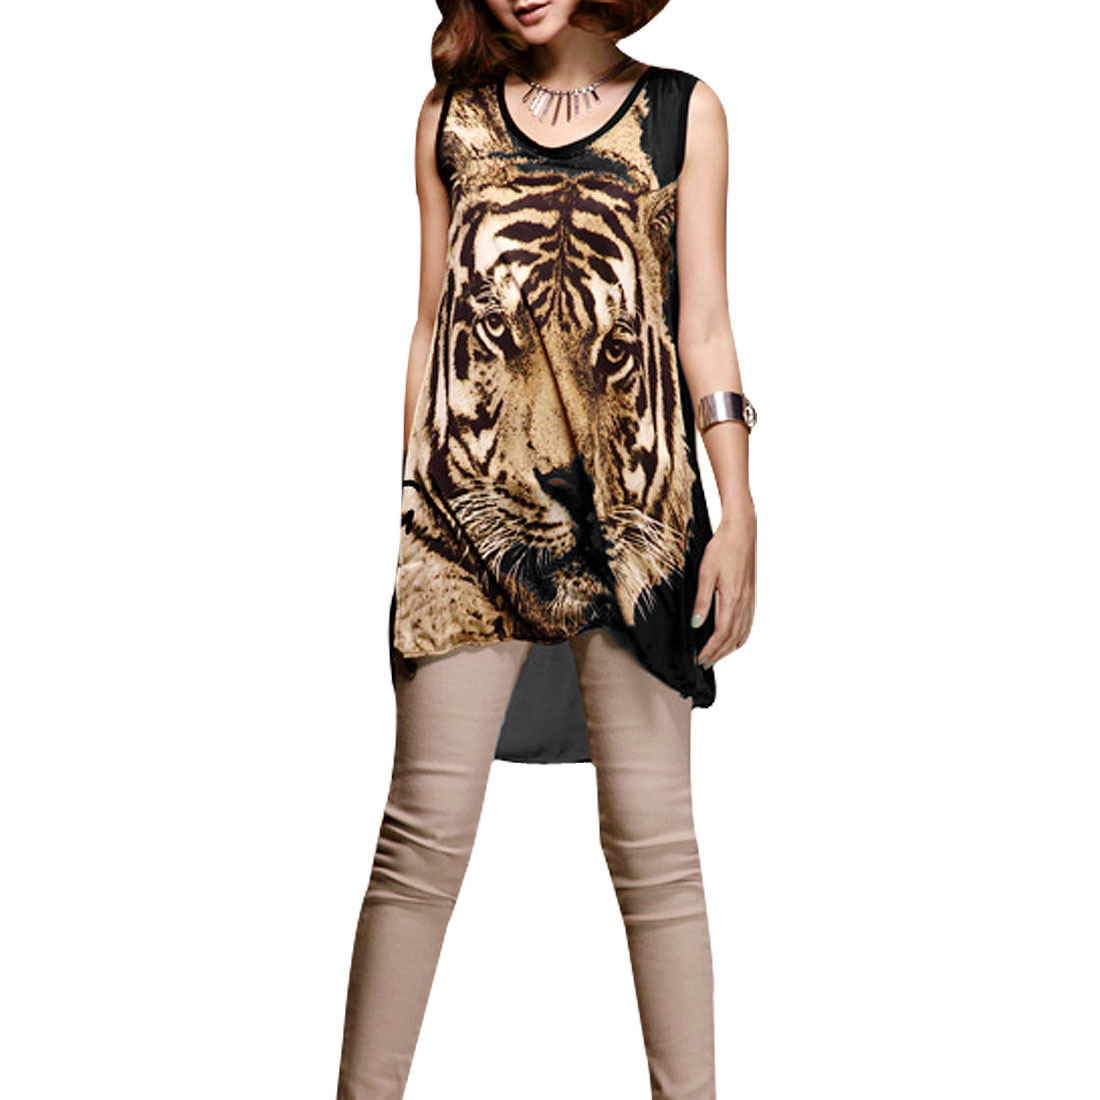 Round Neck Sleeveless Tiger Print Tunic Top Blouse Black Brown XS for Women